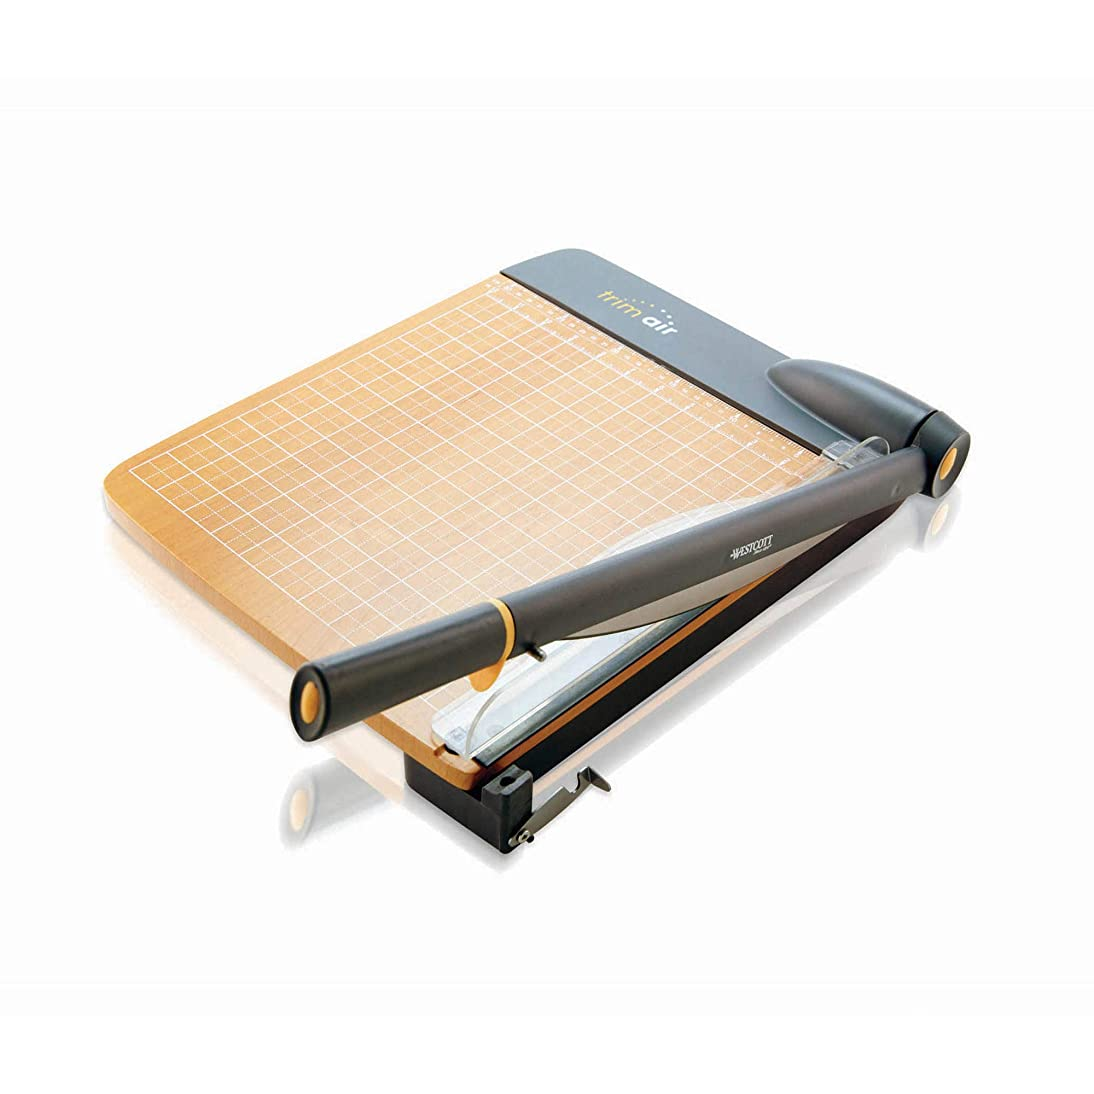 Westcott ACM15108 TrimAir Titanium Wood Guillotine Paper Trimmer with Anti-Microbial Protection, 18